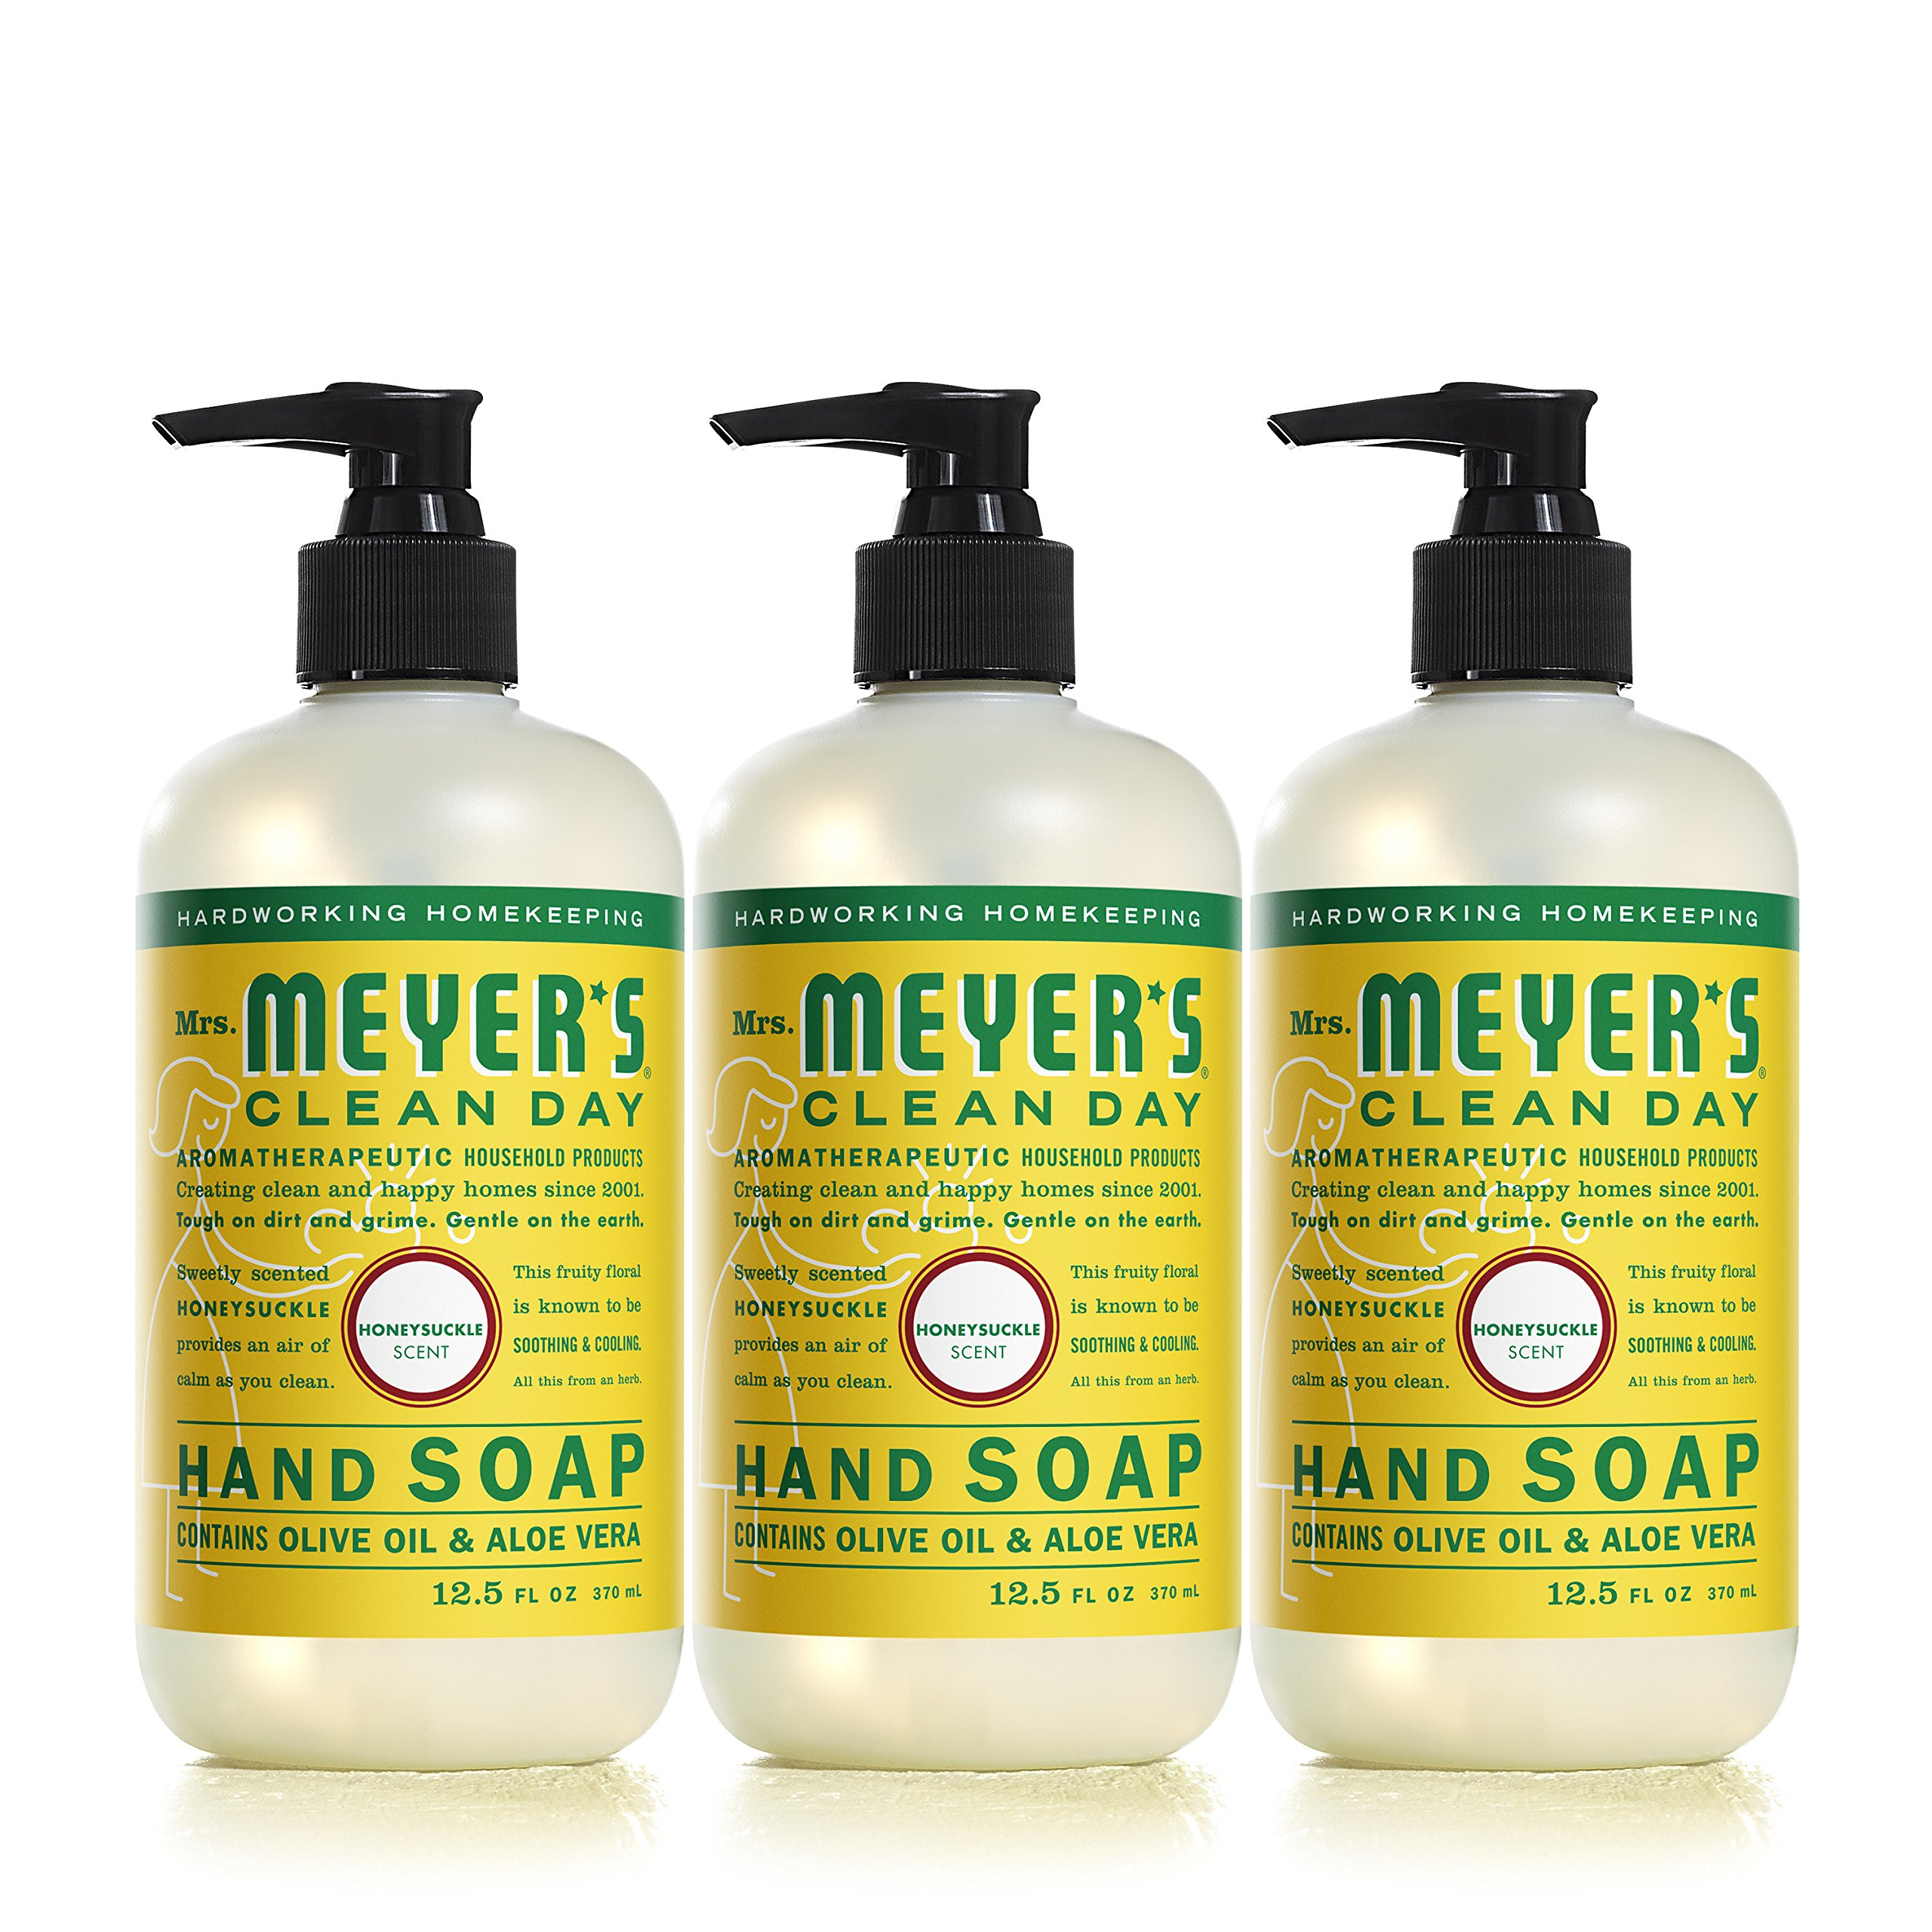 Mrs. Meyers Clean Day Hand Soap, Honeysuckle, 12.5 fl oz